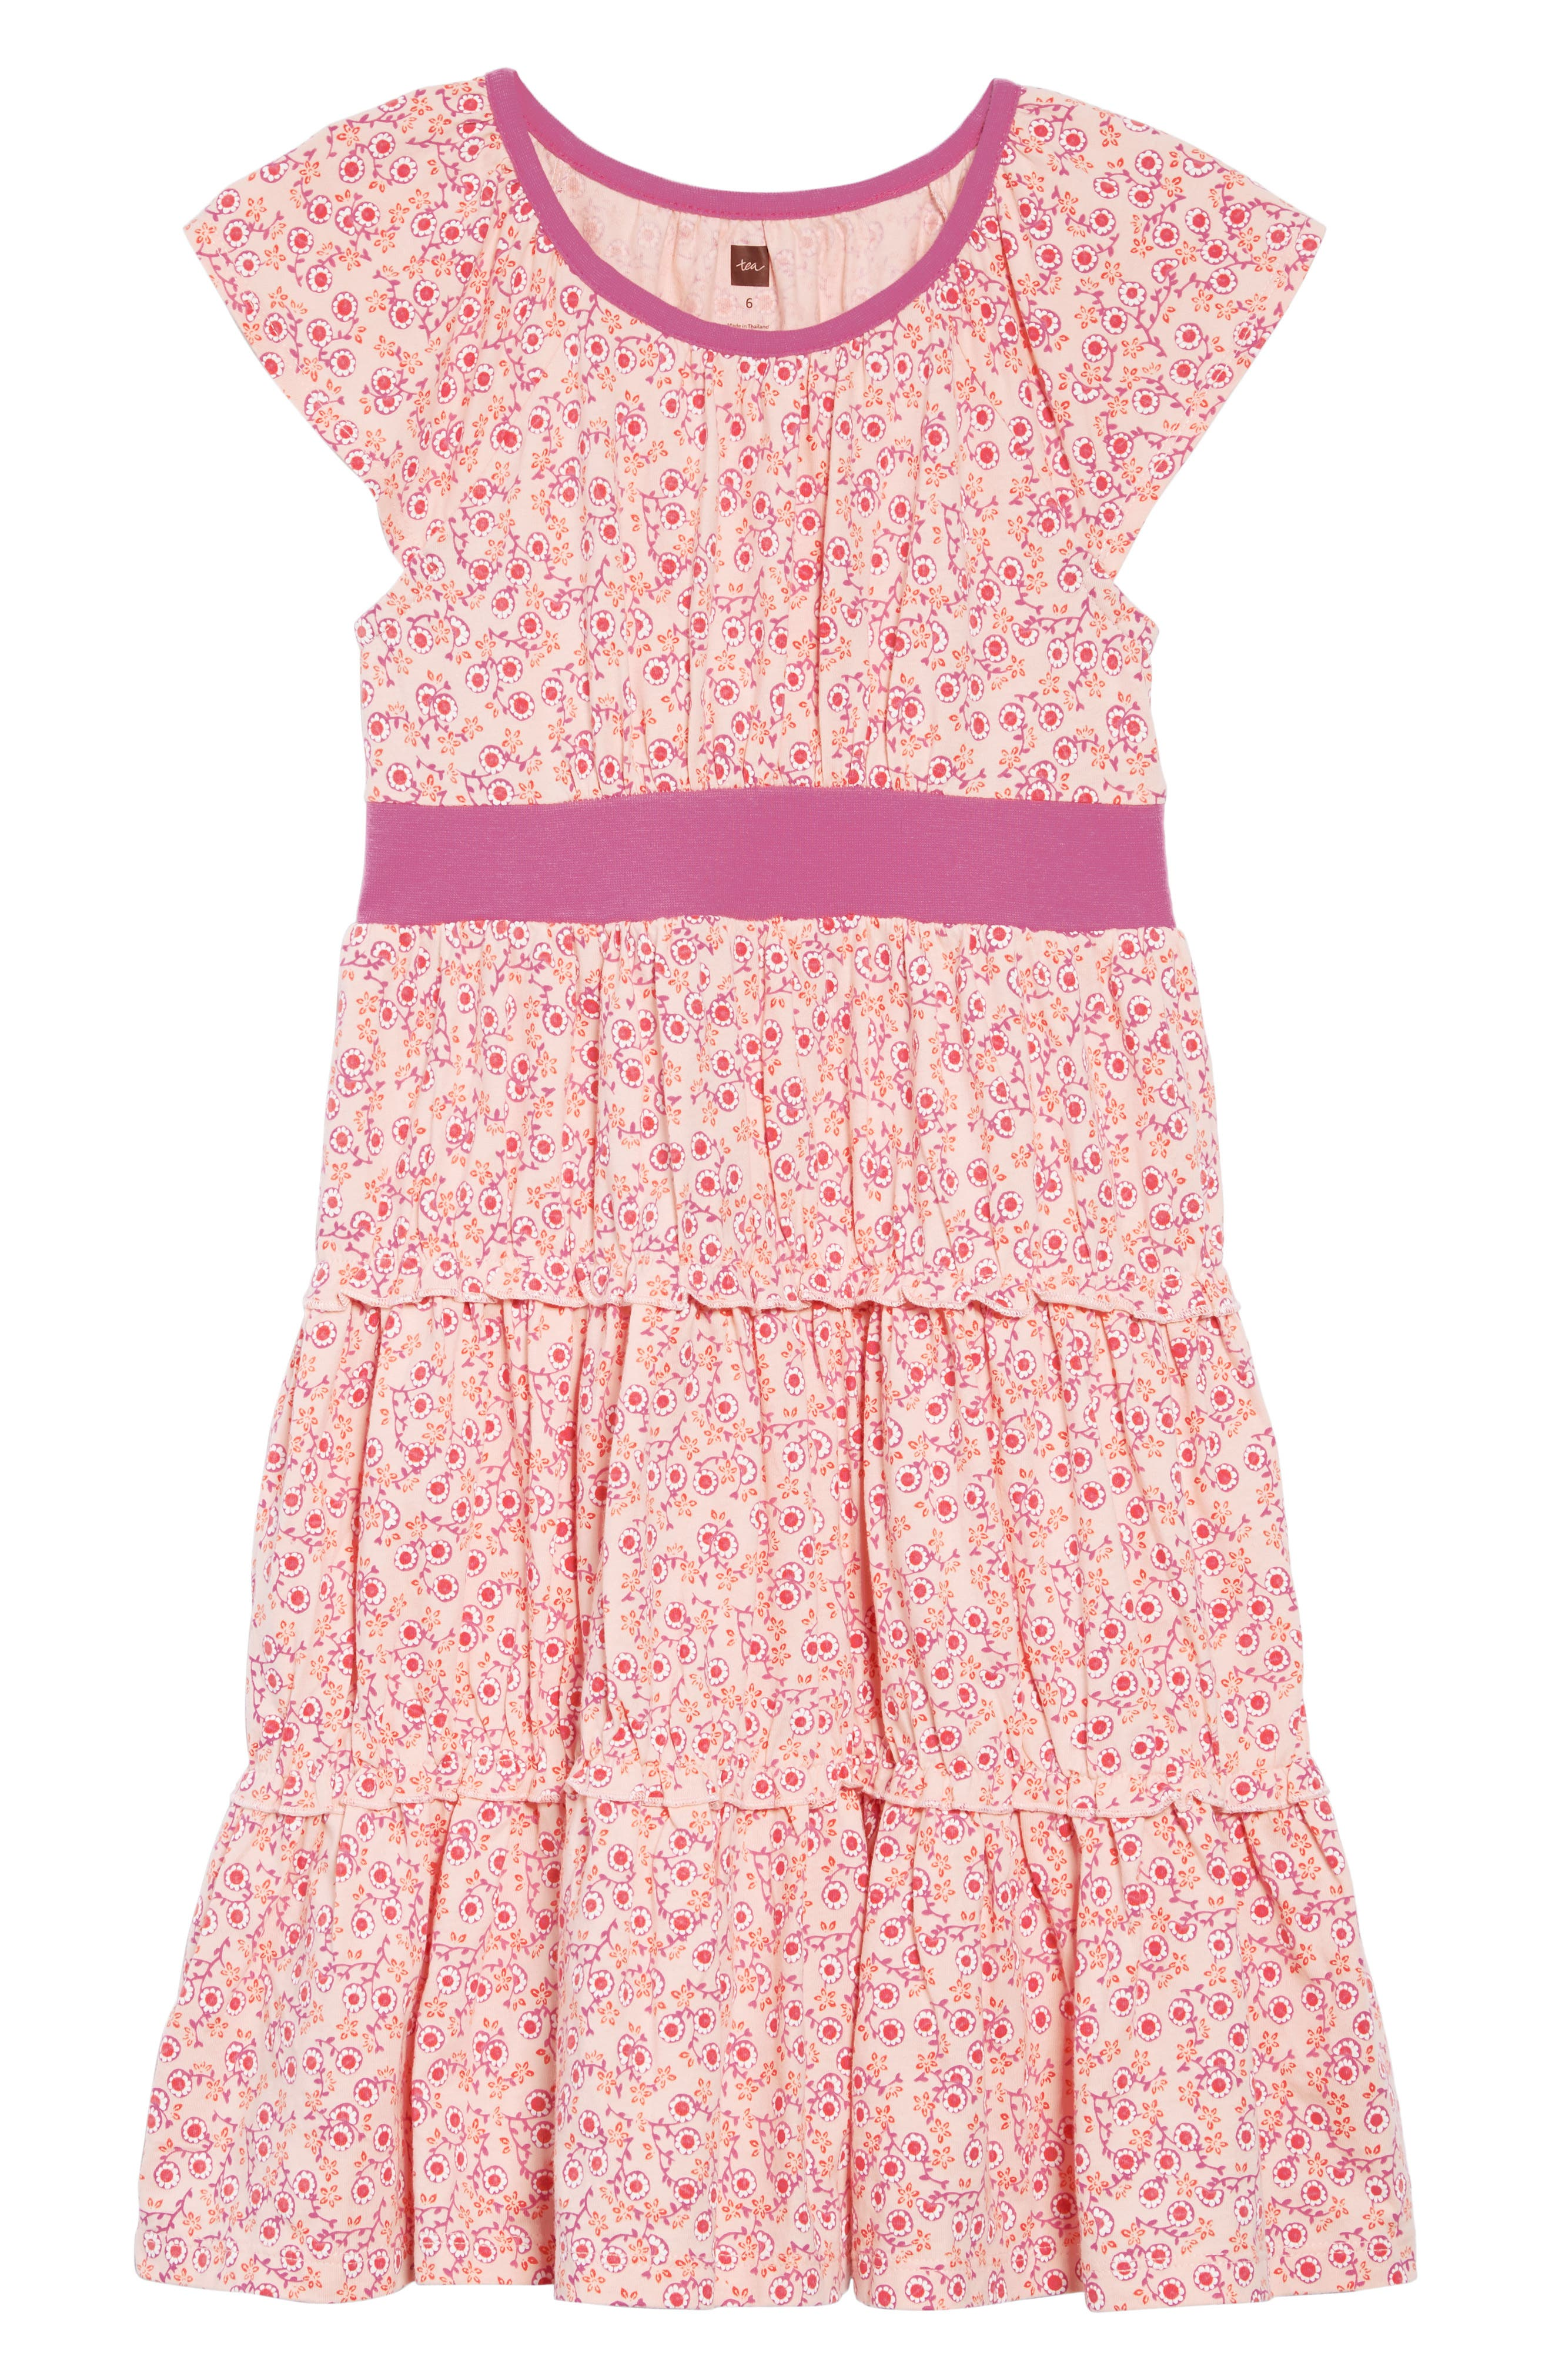 TEA COLLECTION Print Tiered Twirl Dress, Main, color, MEI MEI FLORAL